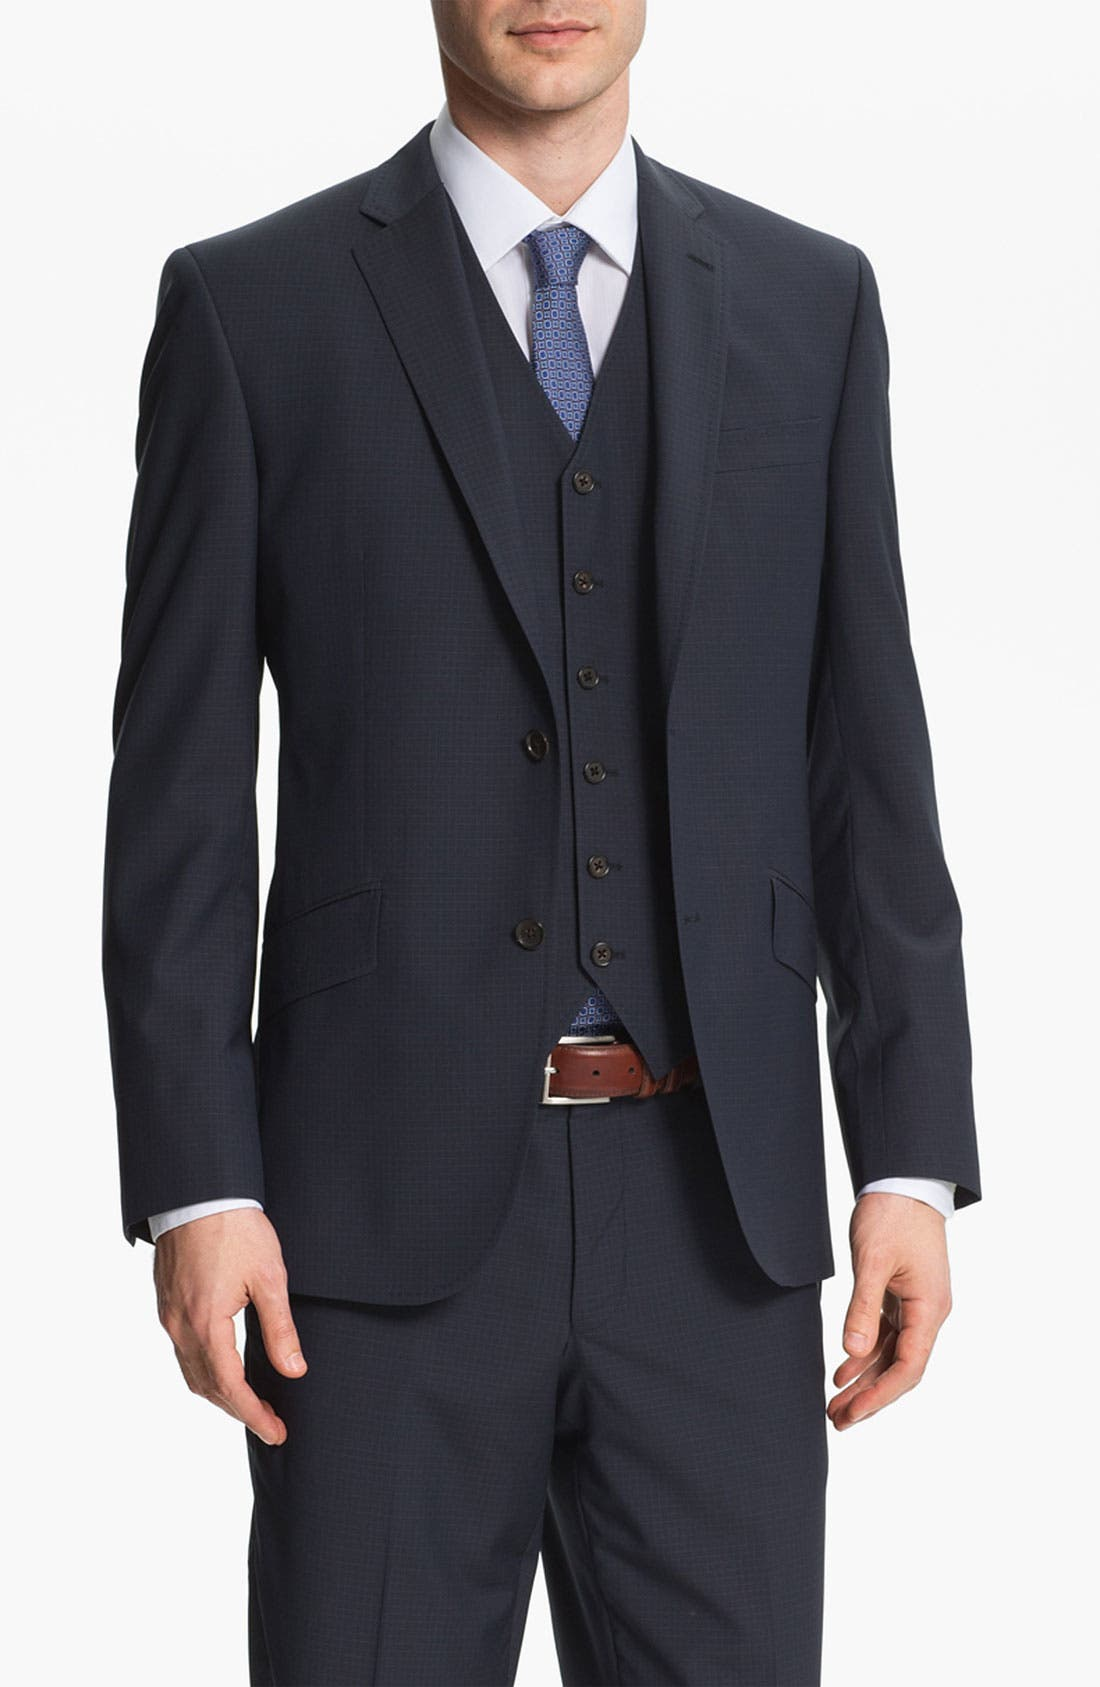 Main Image - Ted Baker London Trim Fit Three Piece Suit